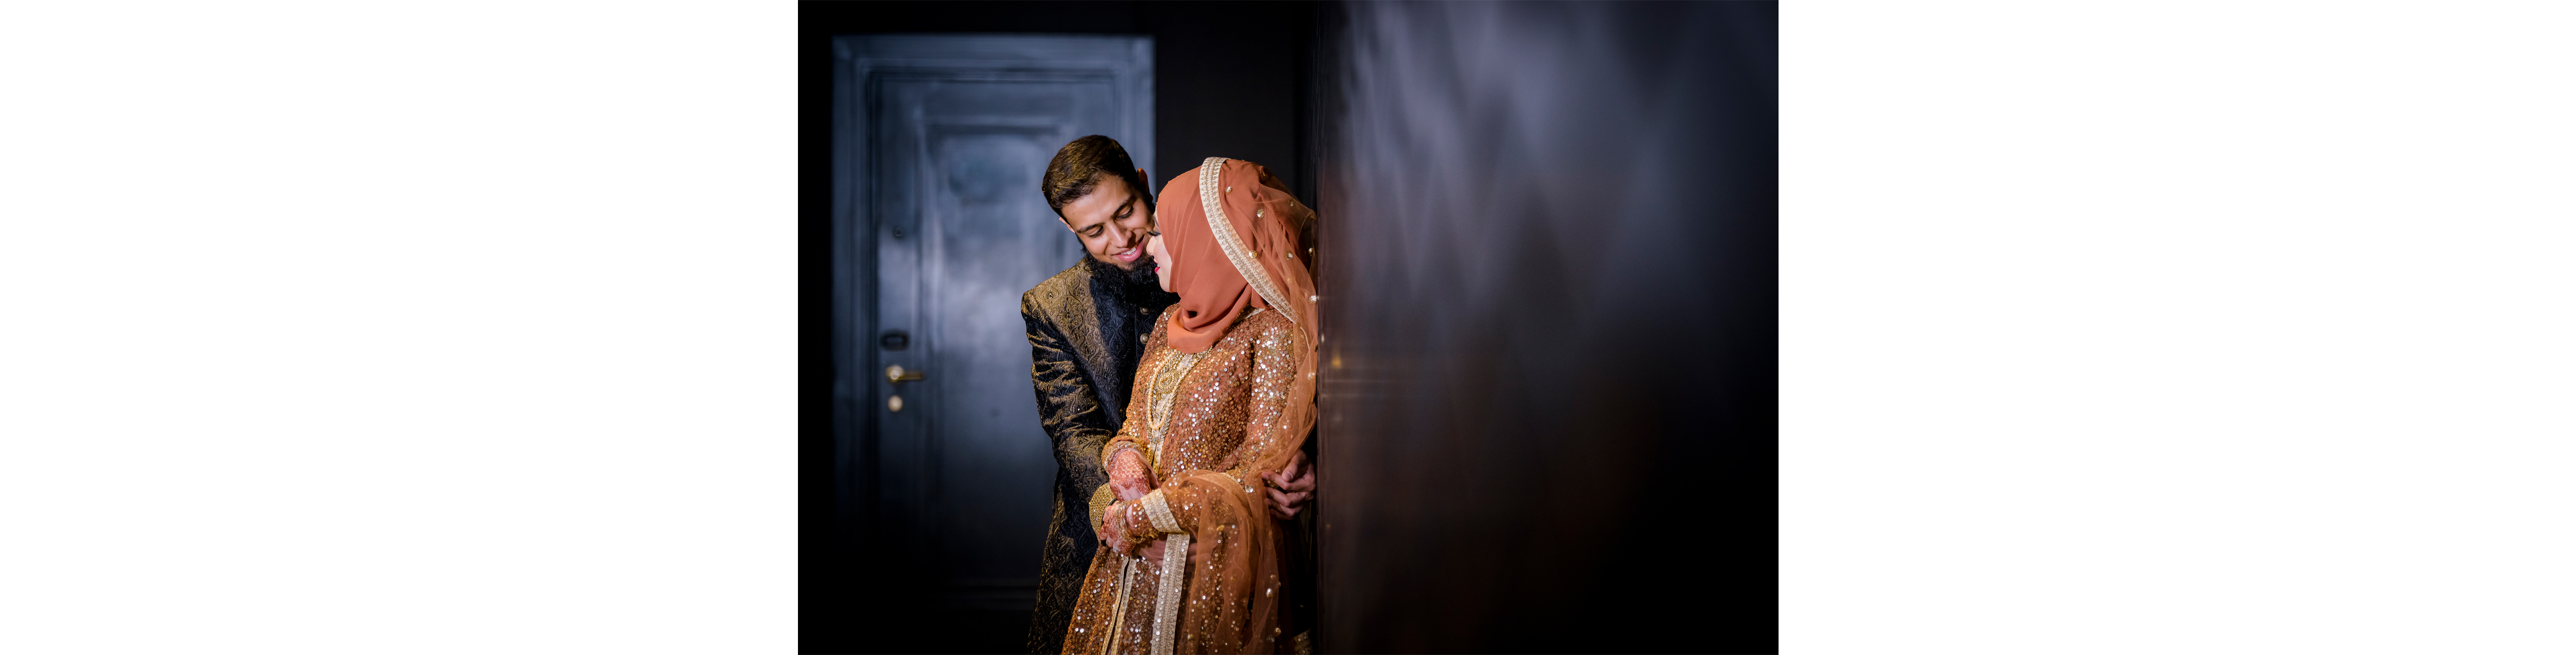 Walima-morning-Couple-Shot-in-Hotel-Gotham